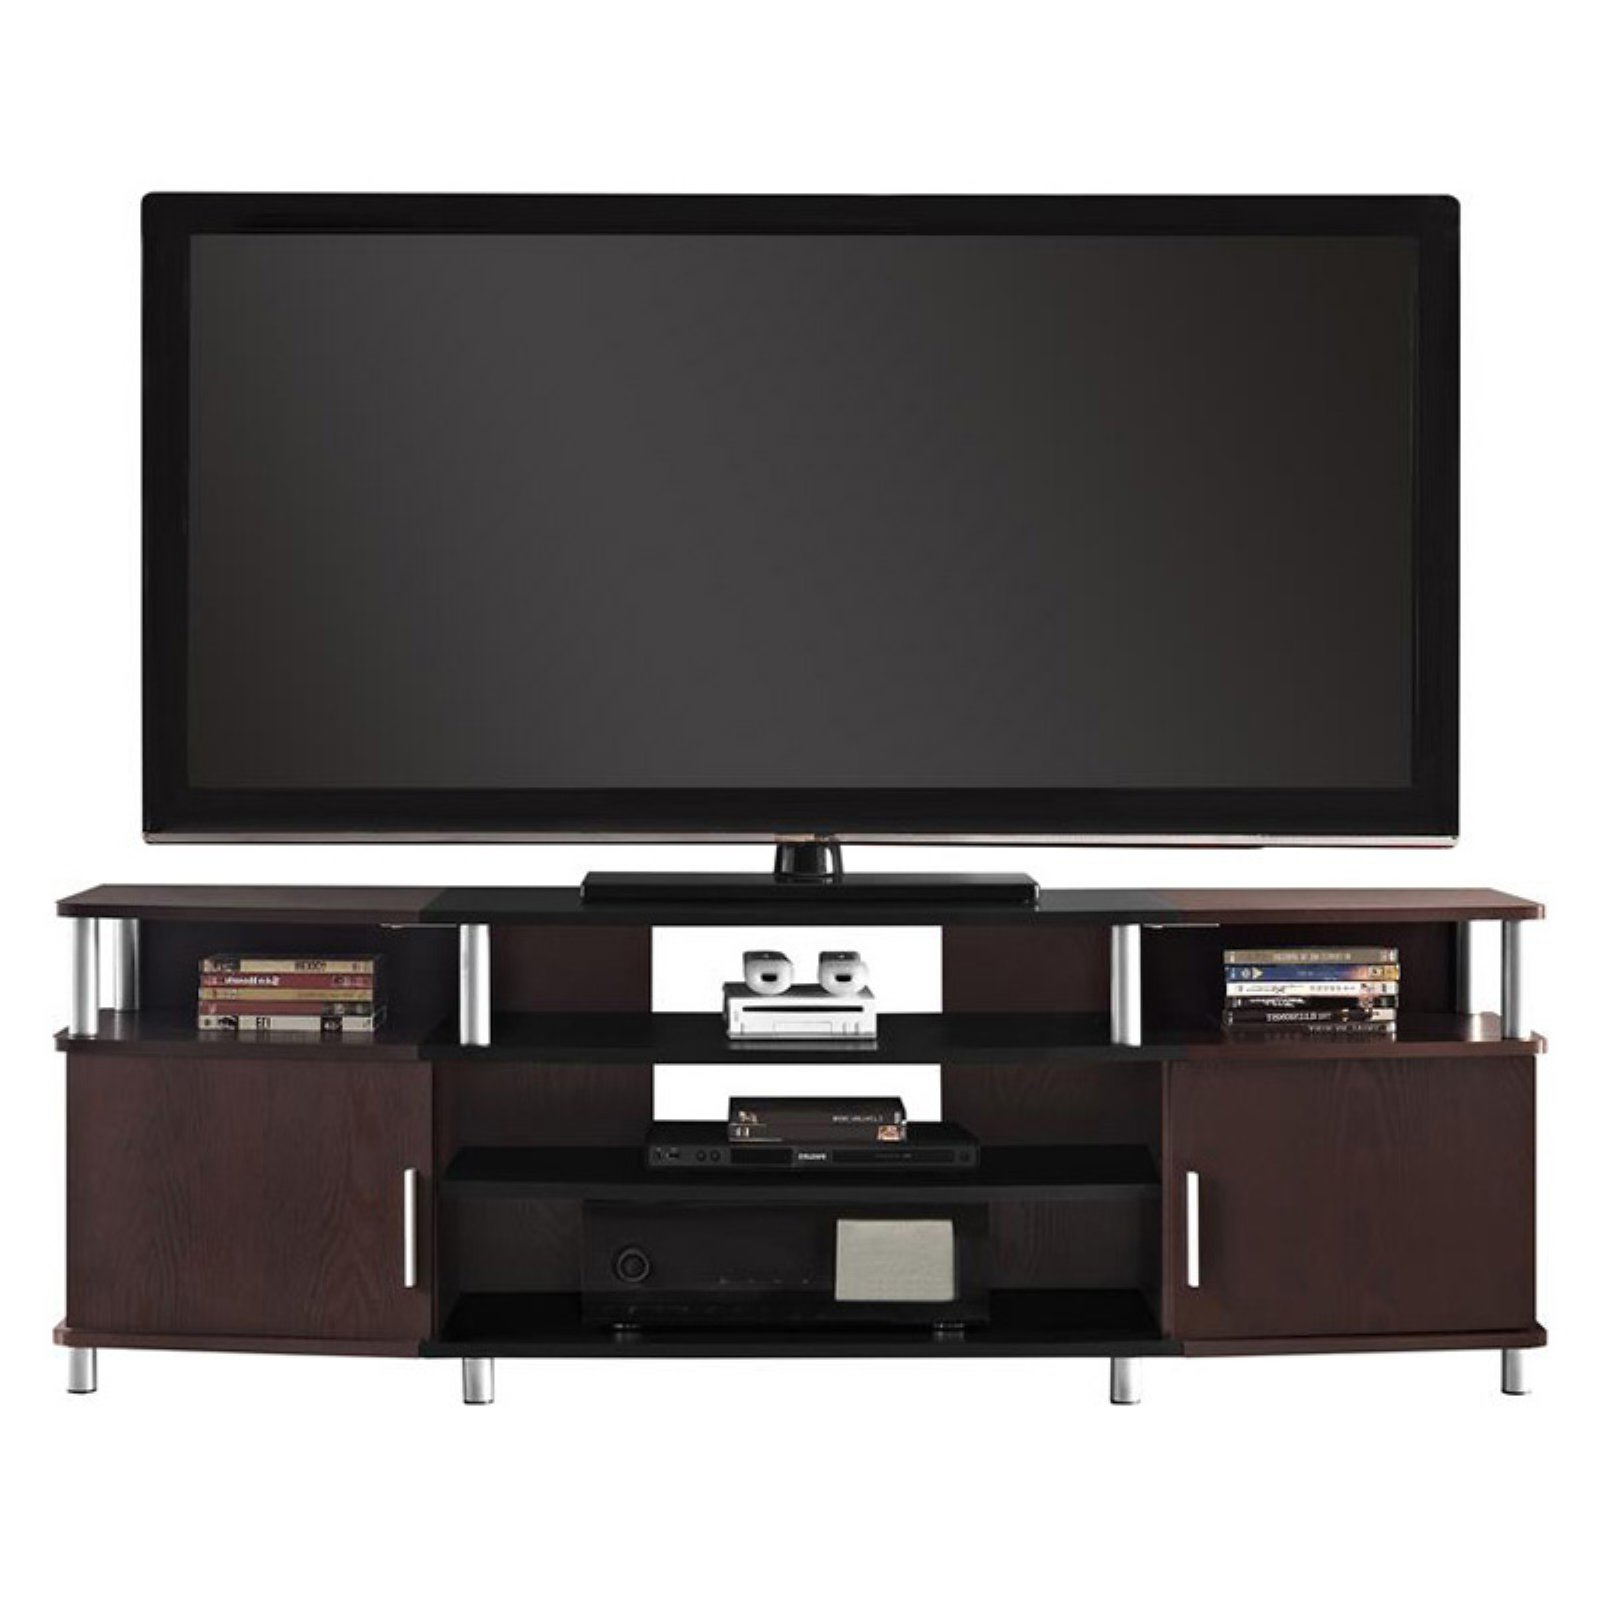 """Ameriwood Home Carson Tv Stand For Tvs Up To 70"""", Multiple Regarding Carson Tv Stands In Black And Cherry (View 6 of 20)"""